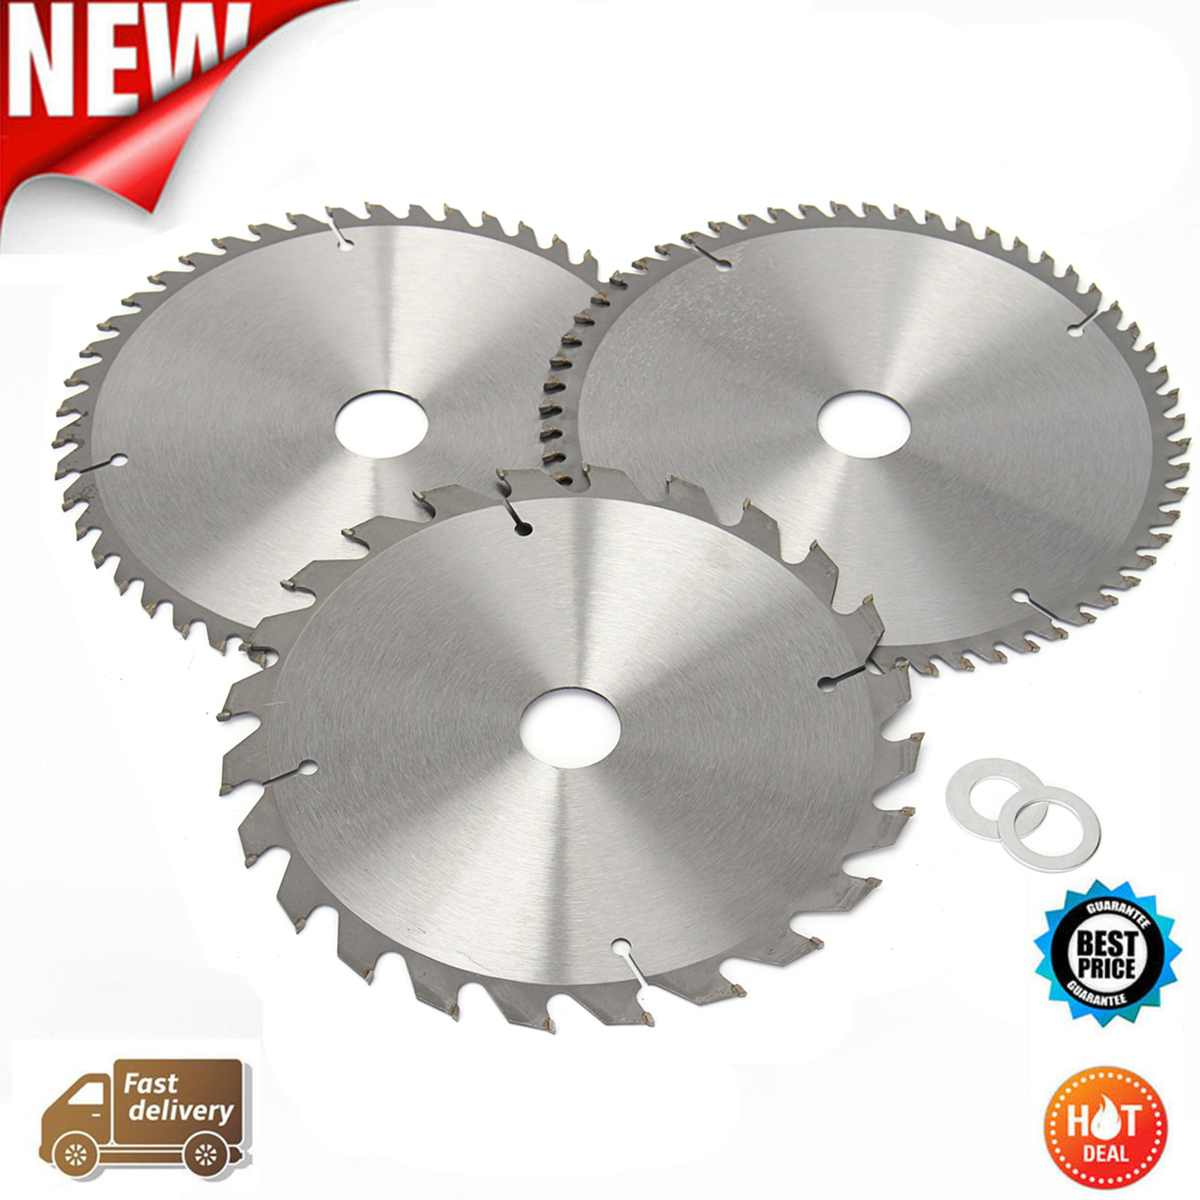 New Hot Sale 3 Pcs/set 210mm TCT 24/48/60T Circular Saw Blade For Home Decoration Purpose Wood/Thin Aluminum General CuttingNew Hot Sale 3 Pcs/set 210mm TCT 24/48/60T Circular Saw Blade For Home Decoration Purpose Wood/Thin Aluminum General Cutting